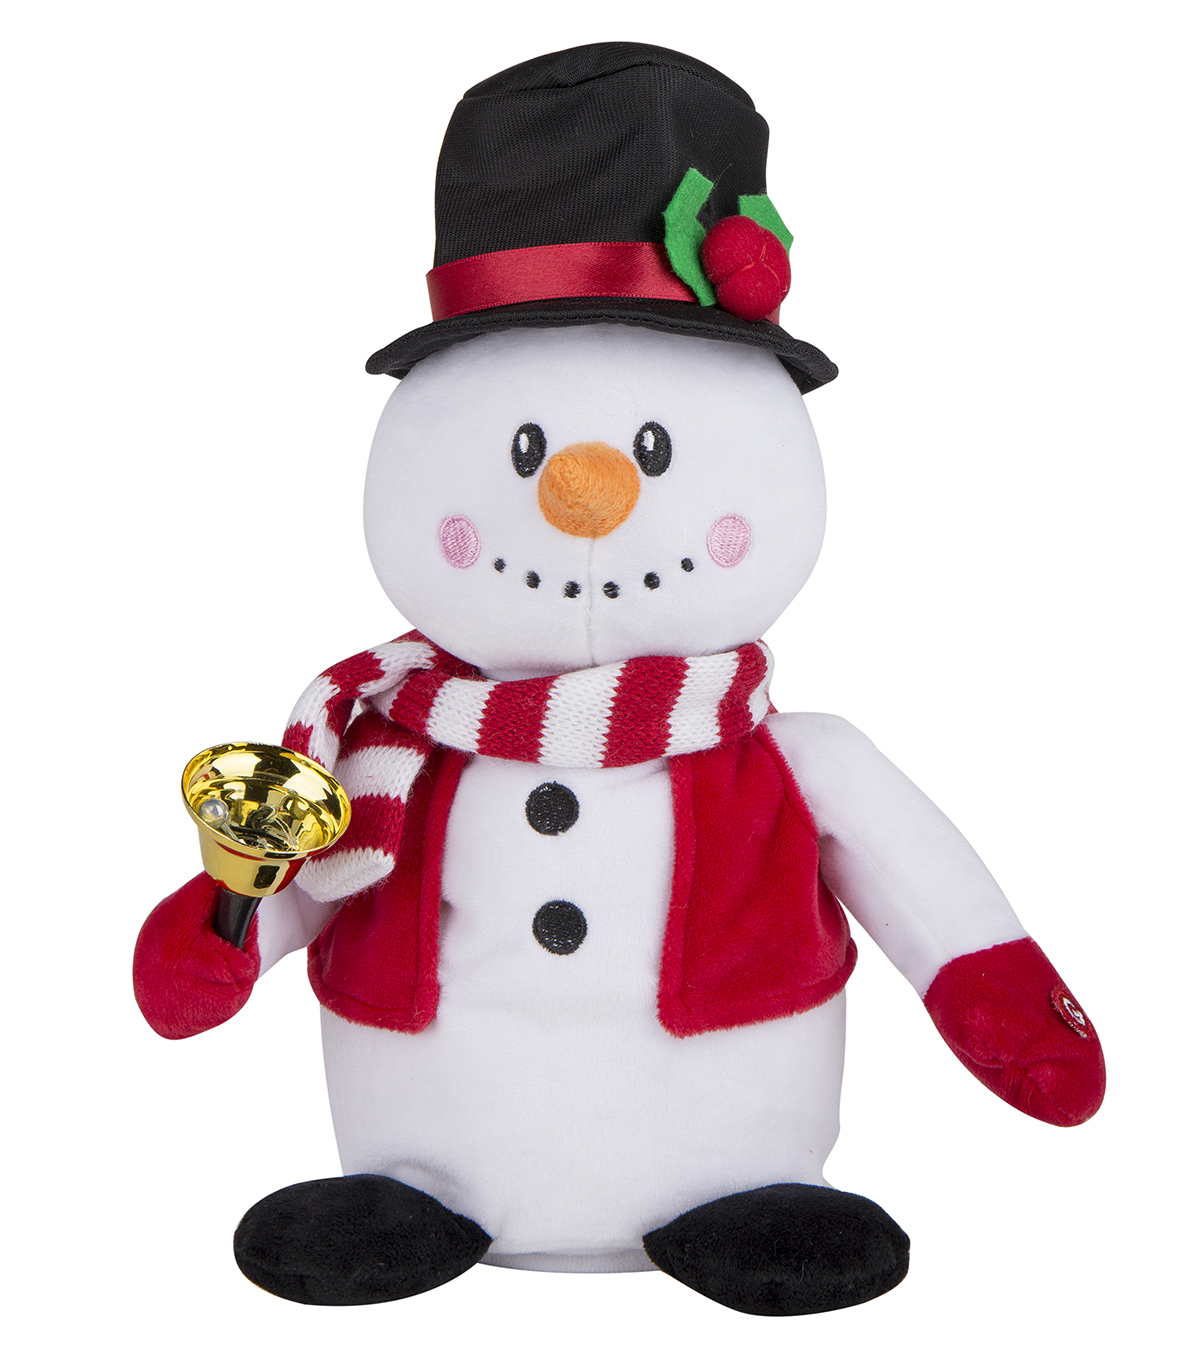 Maker\u0027s Holiday Christmas Ho Ho Ho Decor Singing Snowman Plush